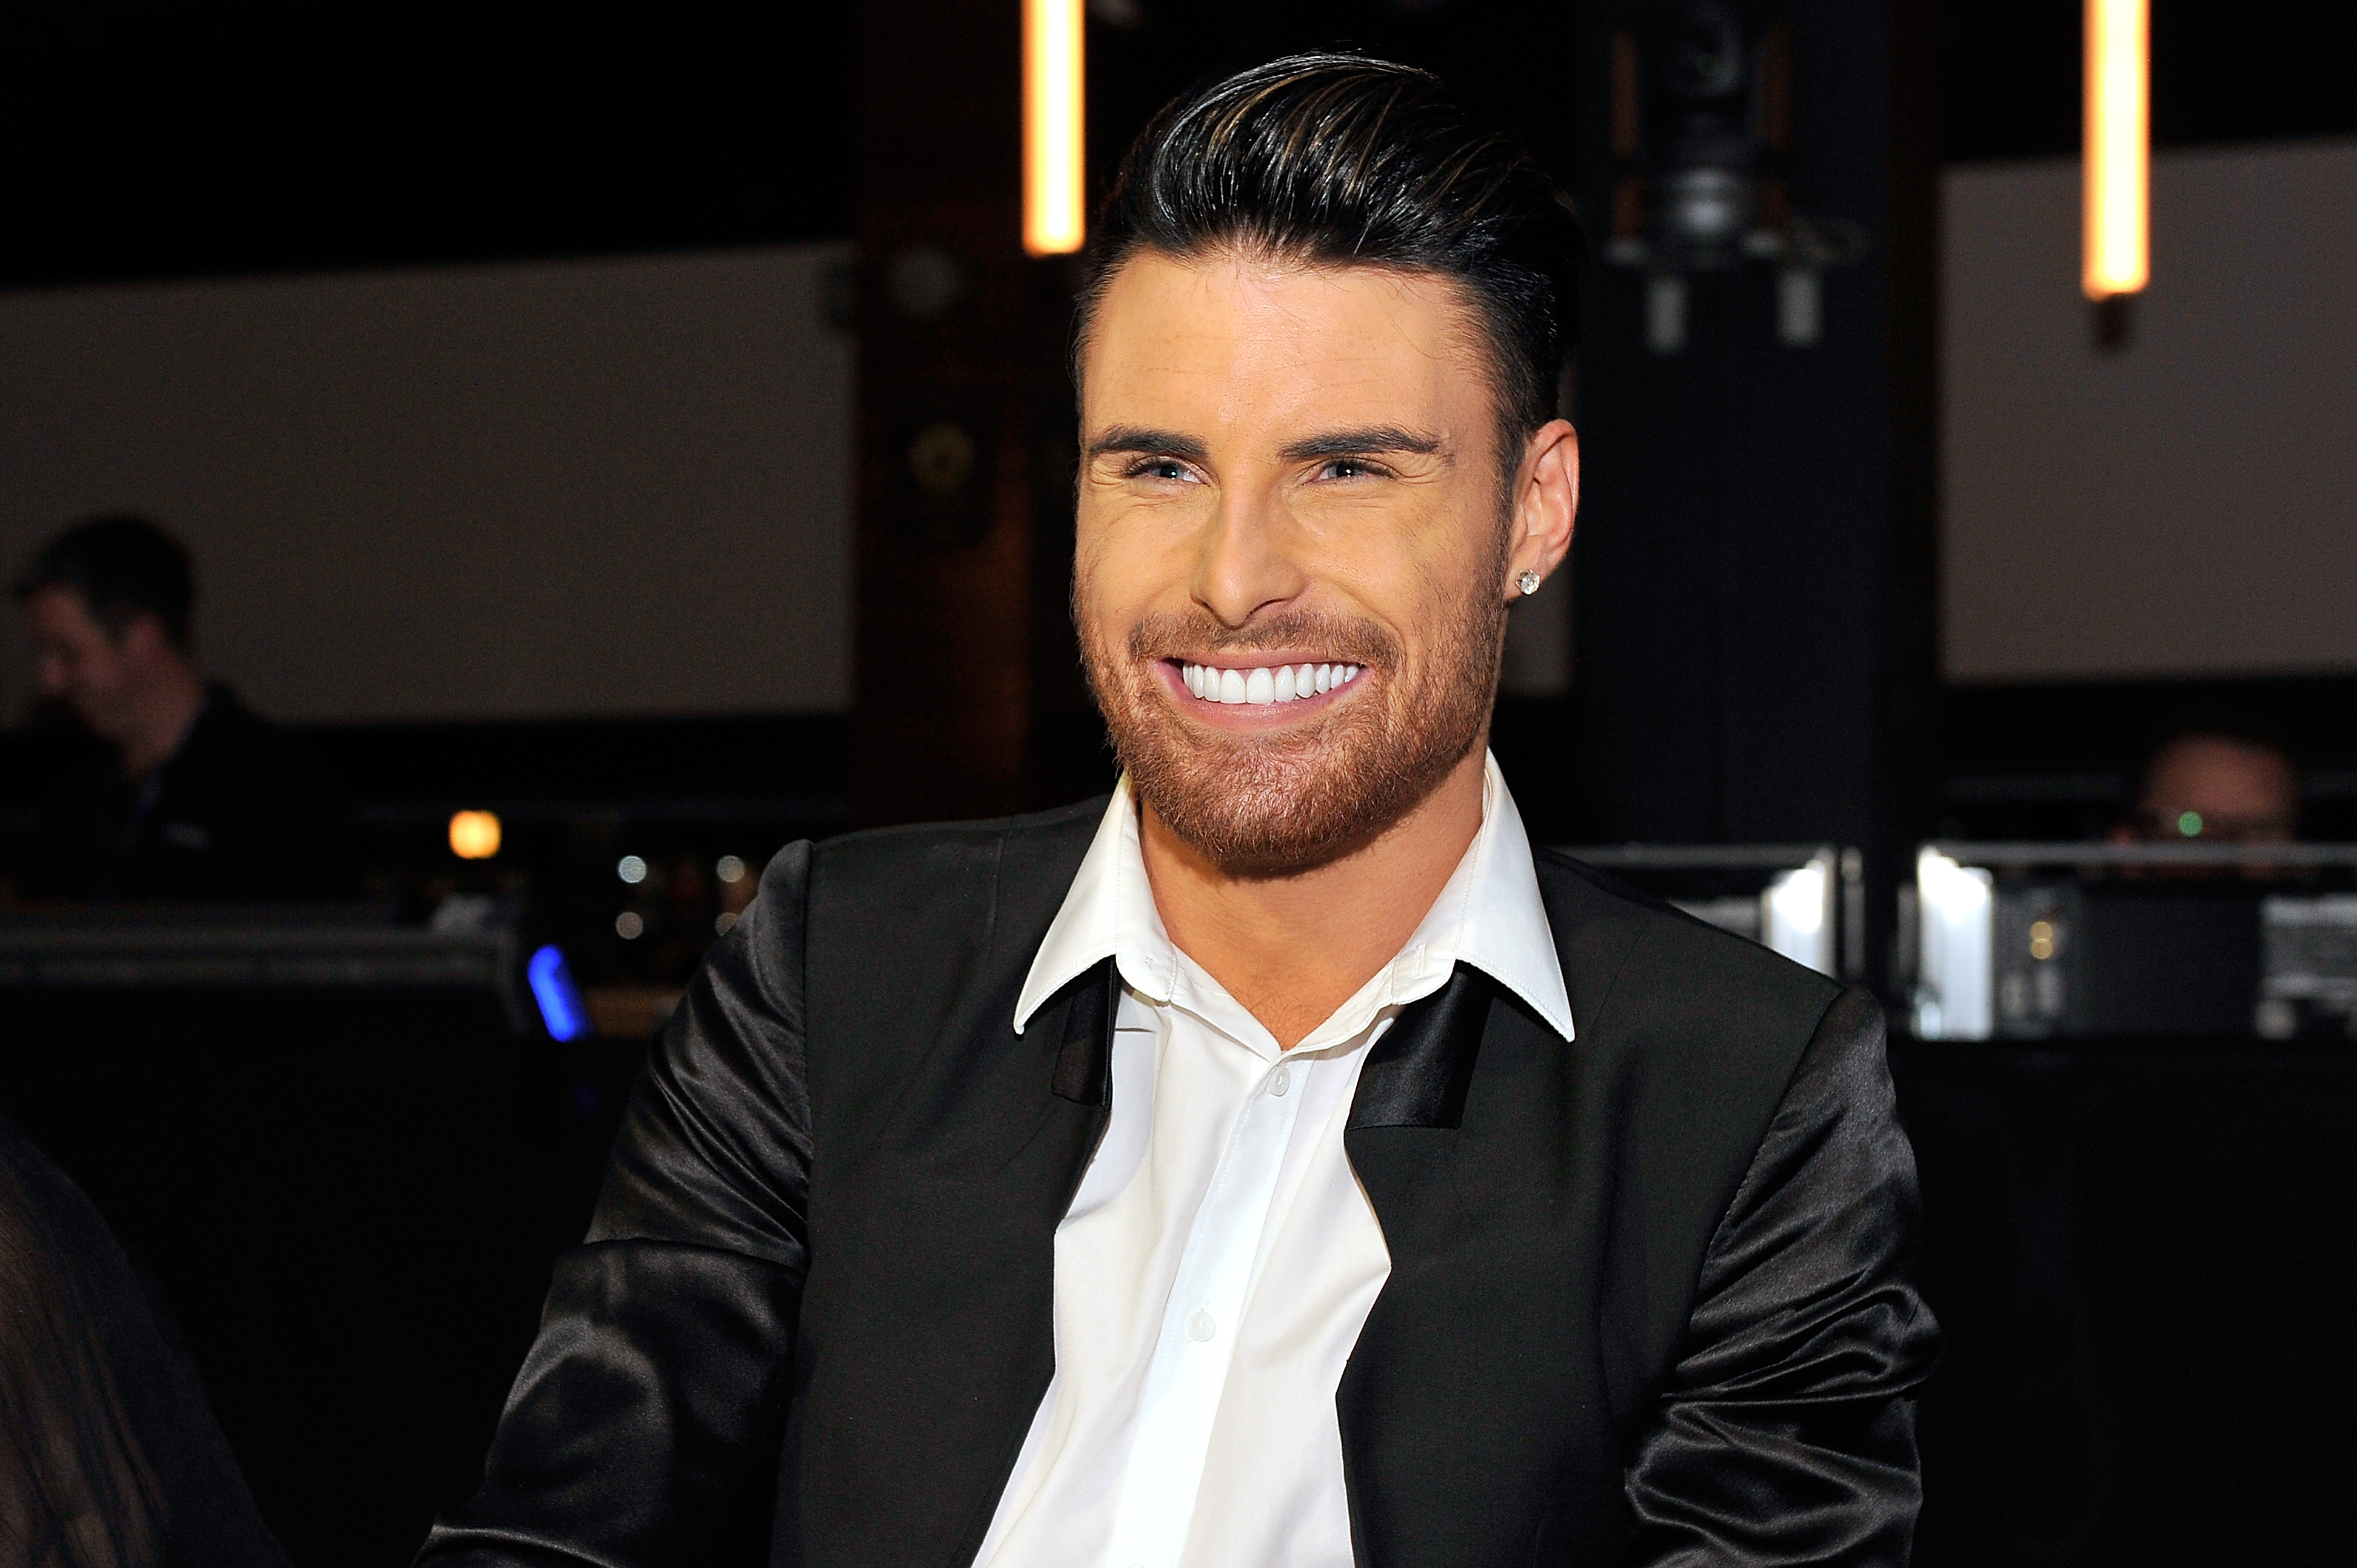 Rylan Clark mysteriously drops out of hosting Eurovision final at last minute but sends support from home